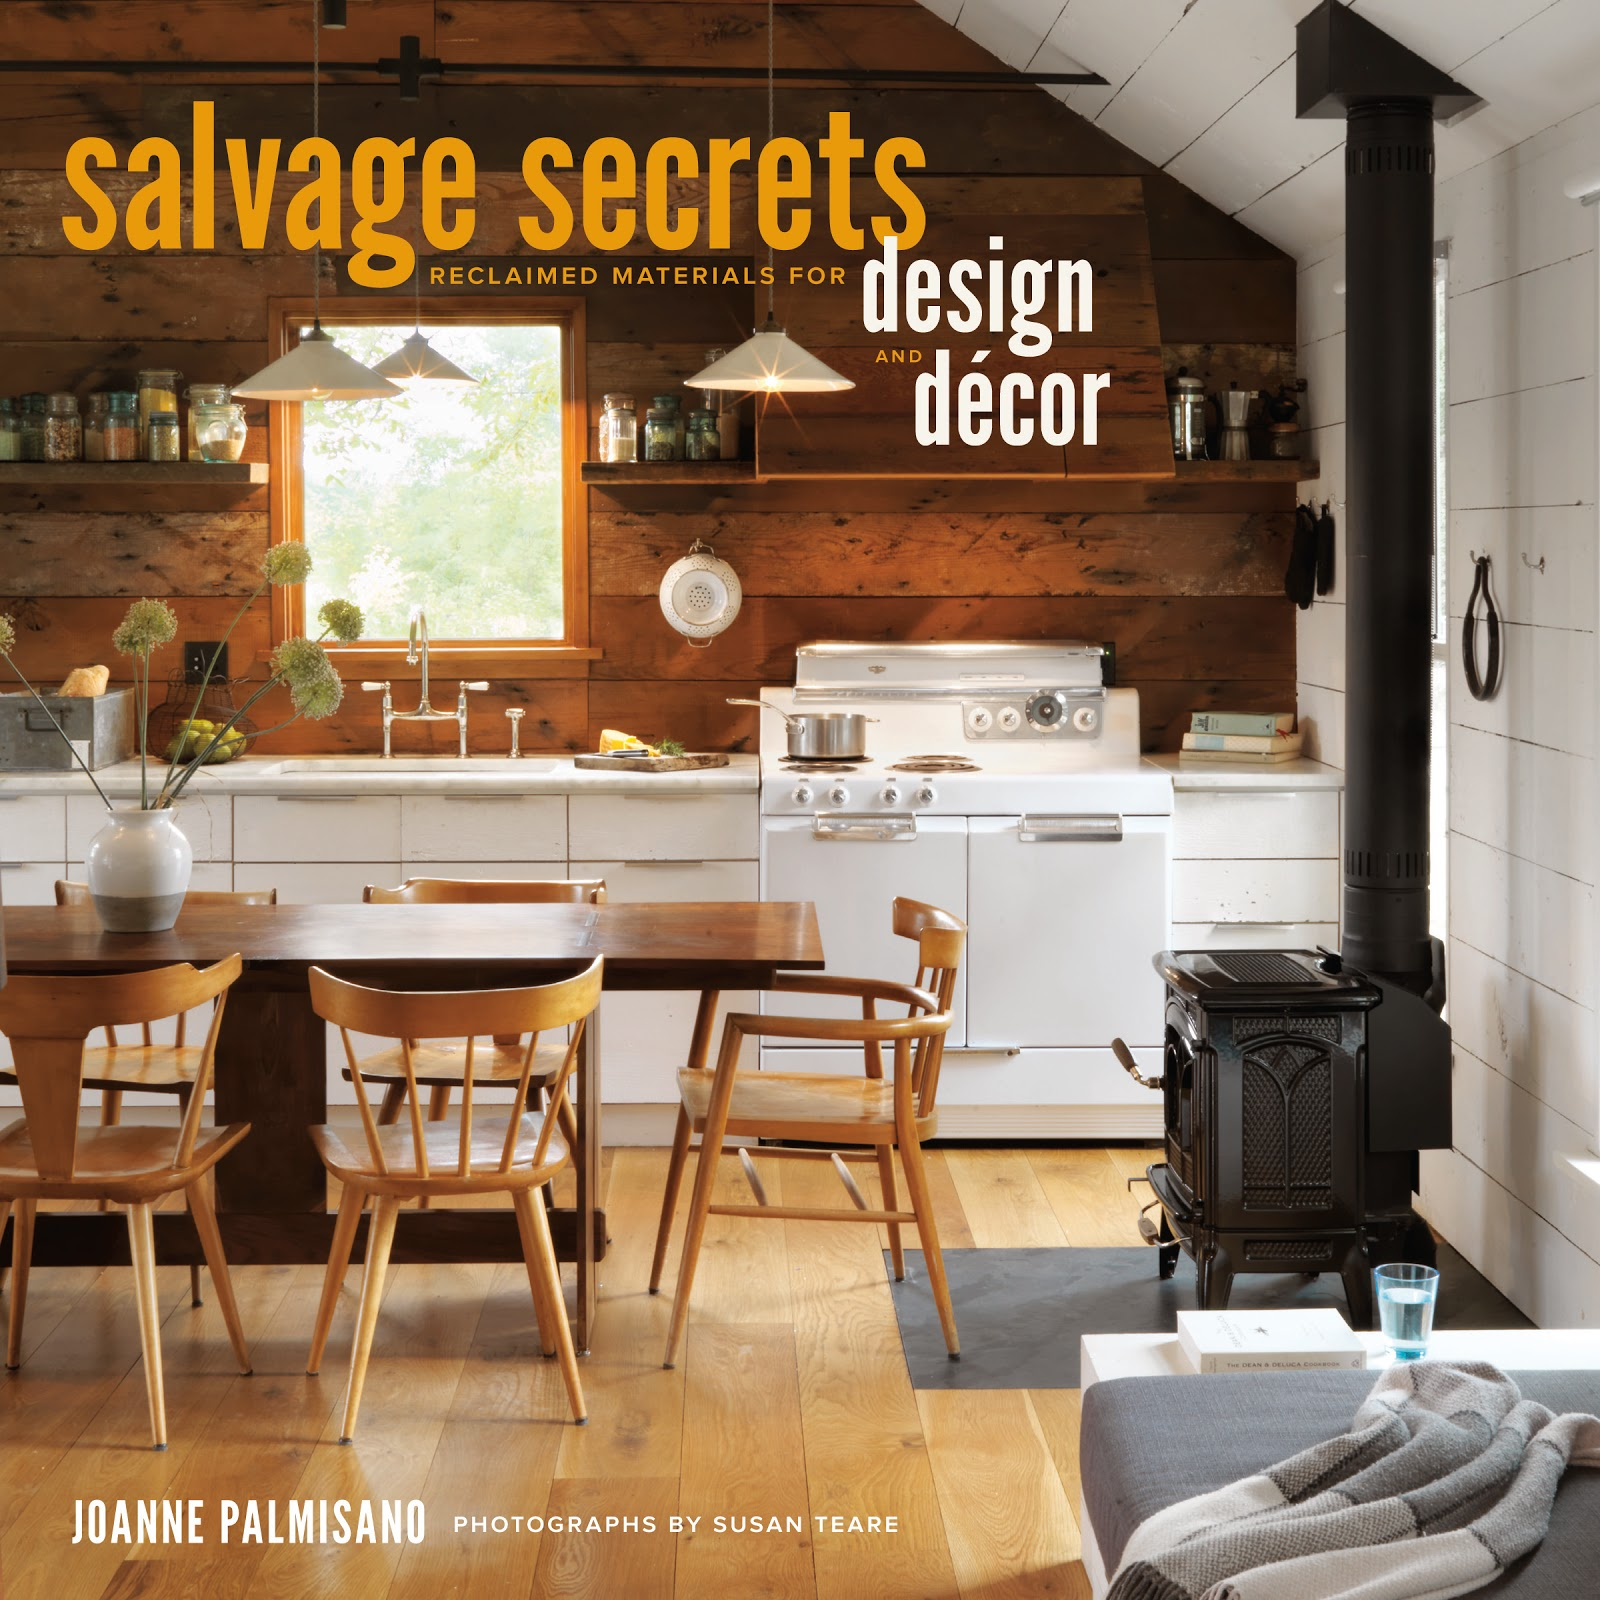 LOVE this book, Salvage Secrets Design and Decor. Enter to win a copy!